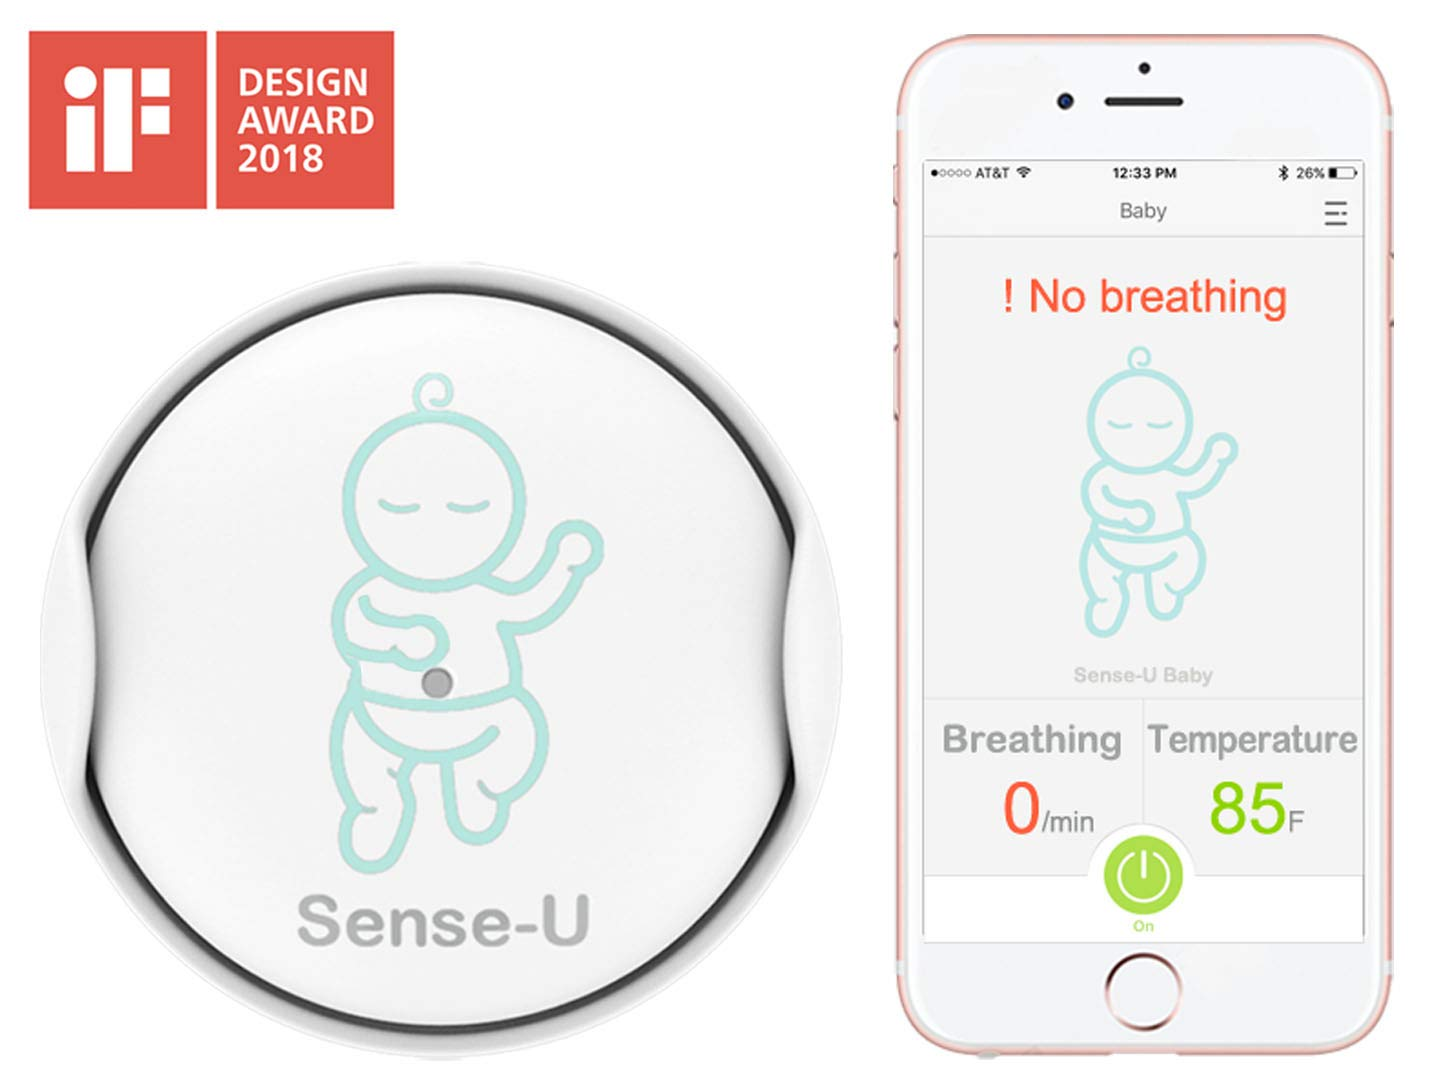 Sense-U Baby Breathing & Rollover Movement Monitor: Alerts You for No Breathing, Stomach Sleeping, Overheat and Getting Cold with Audible Alarm from Your Smartphone SU-201U